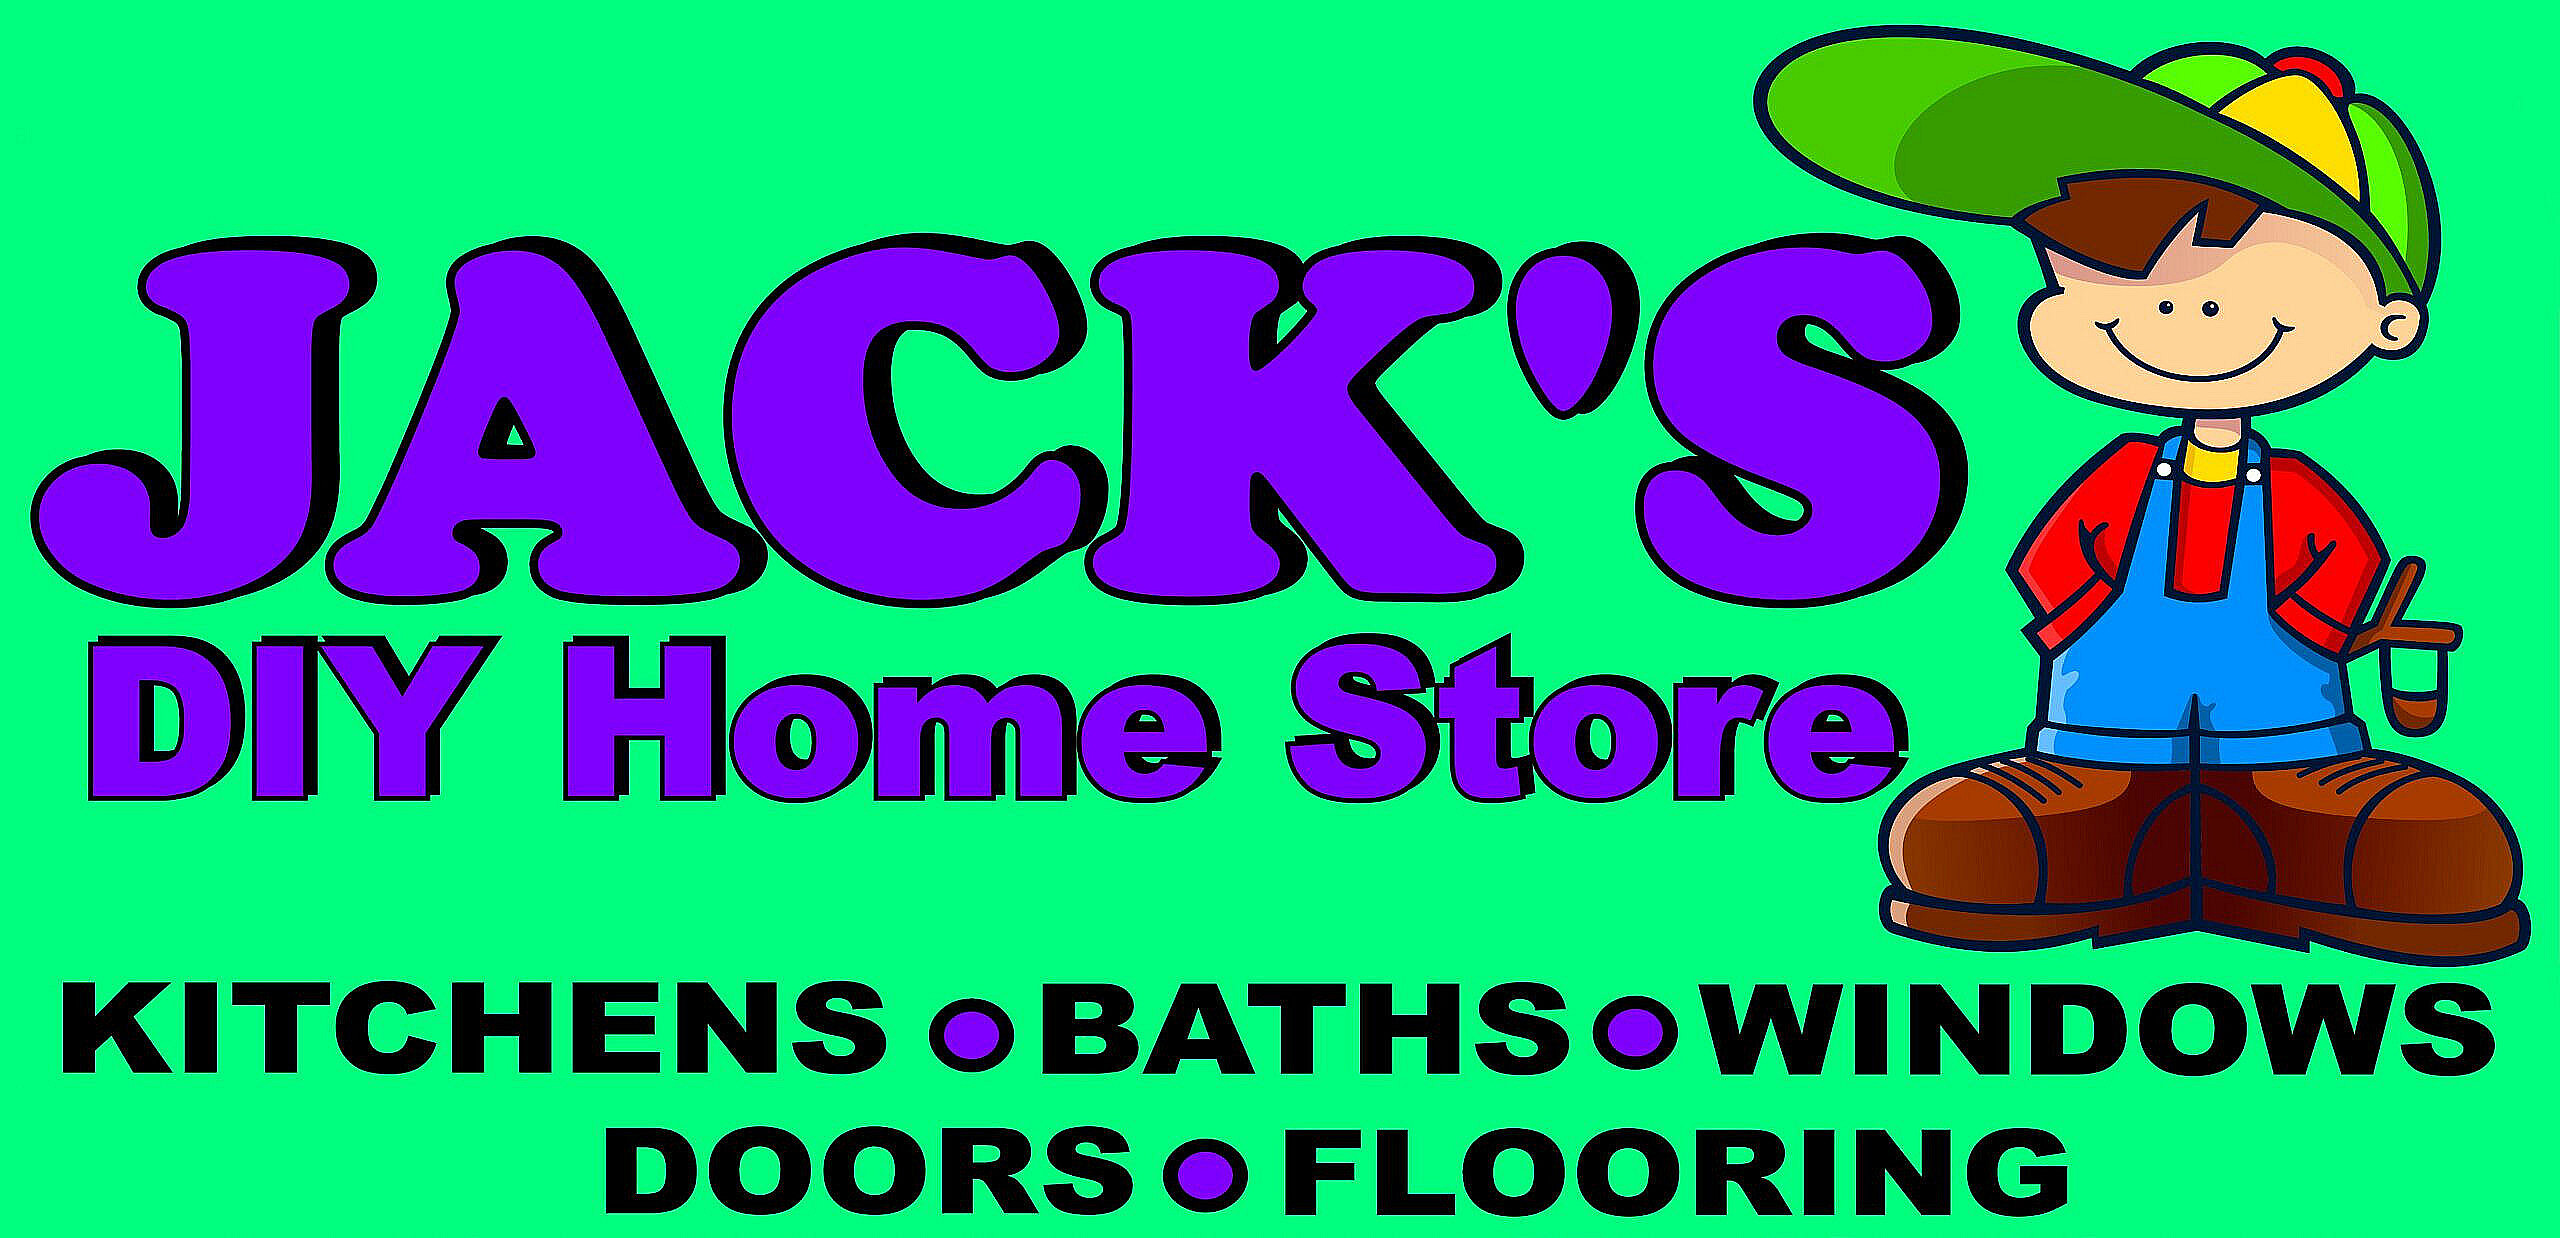 JACK'S DIY Home Store